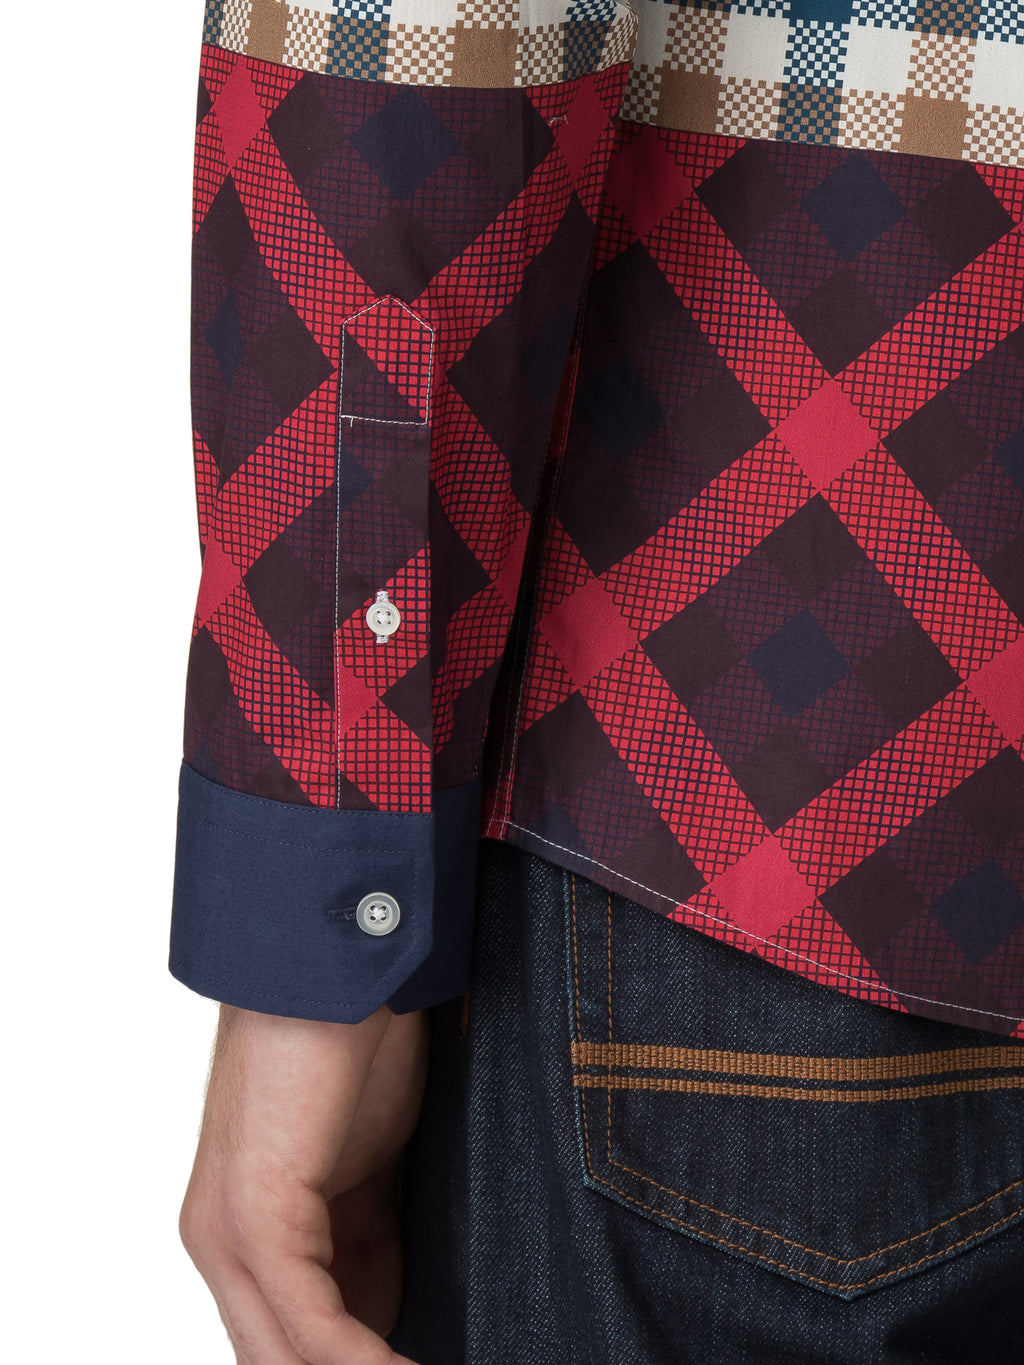 House of Holland X Ben Sherman Long Sleeve Multi Check Printed Shirt by House of Holland